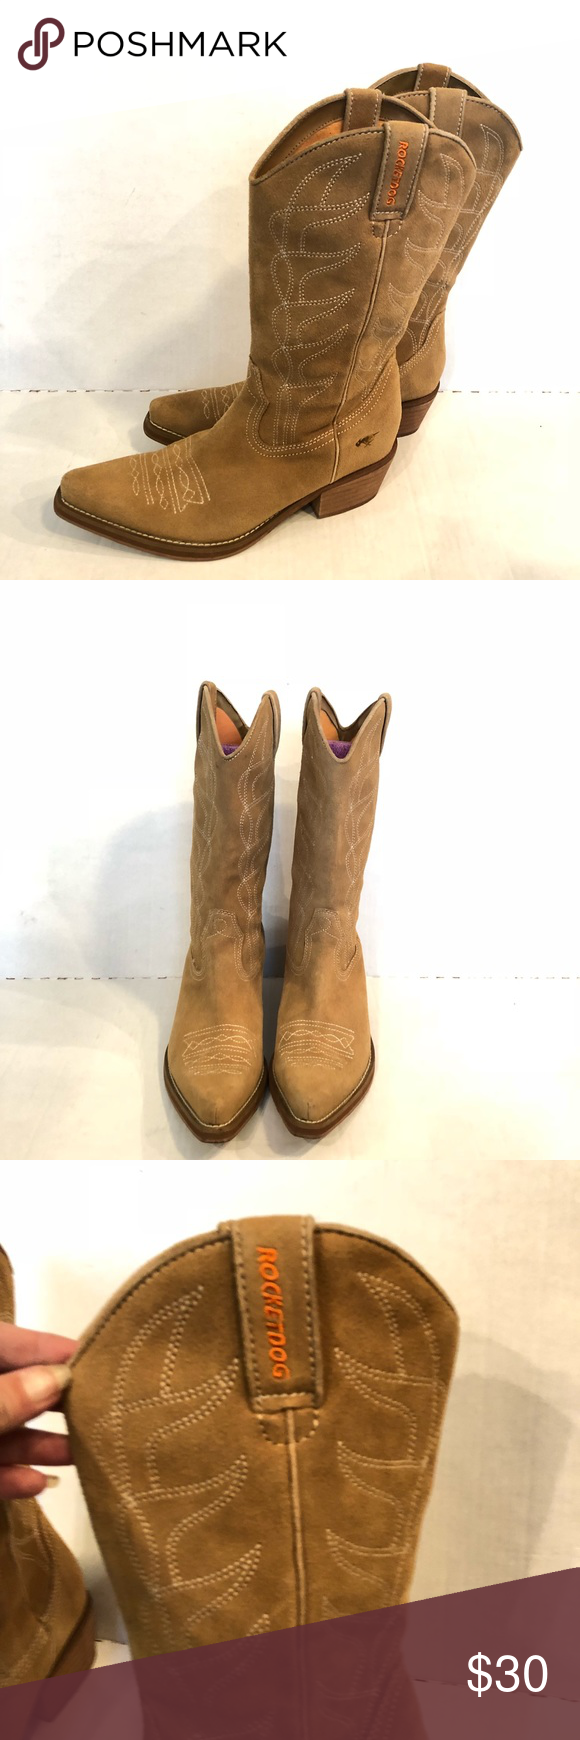 5a704119d5d ROCKET DOG suede cowgirl boots Women's size 8.5. Very cute rocket ...